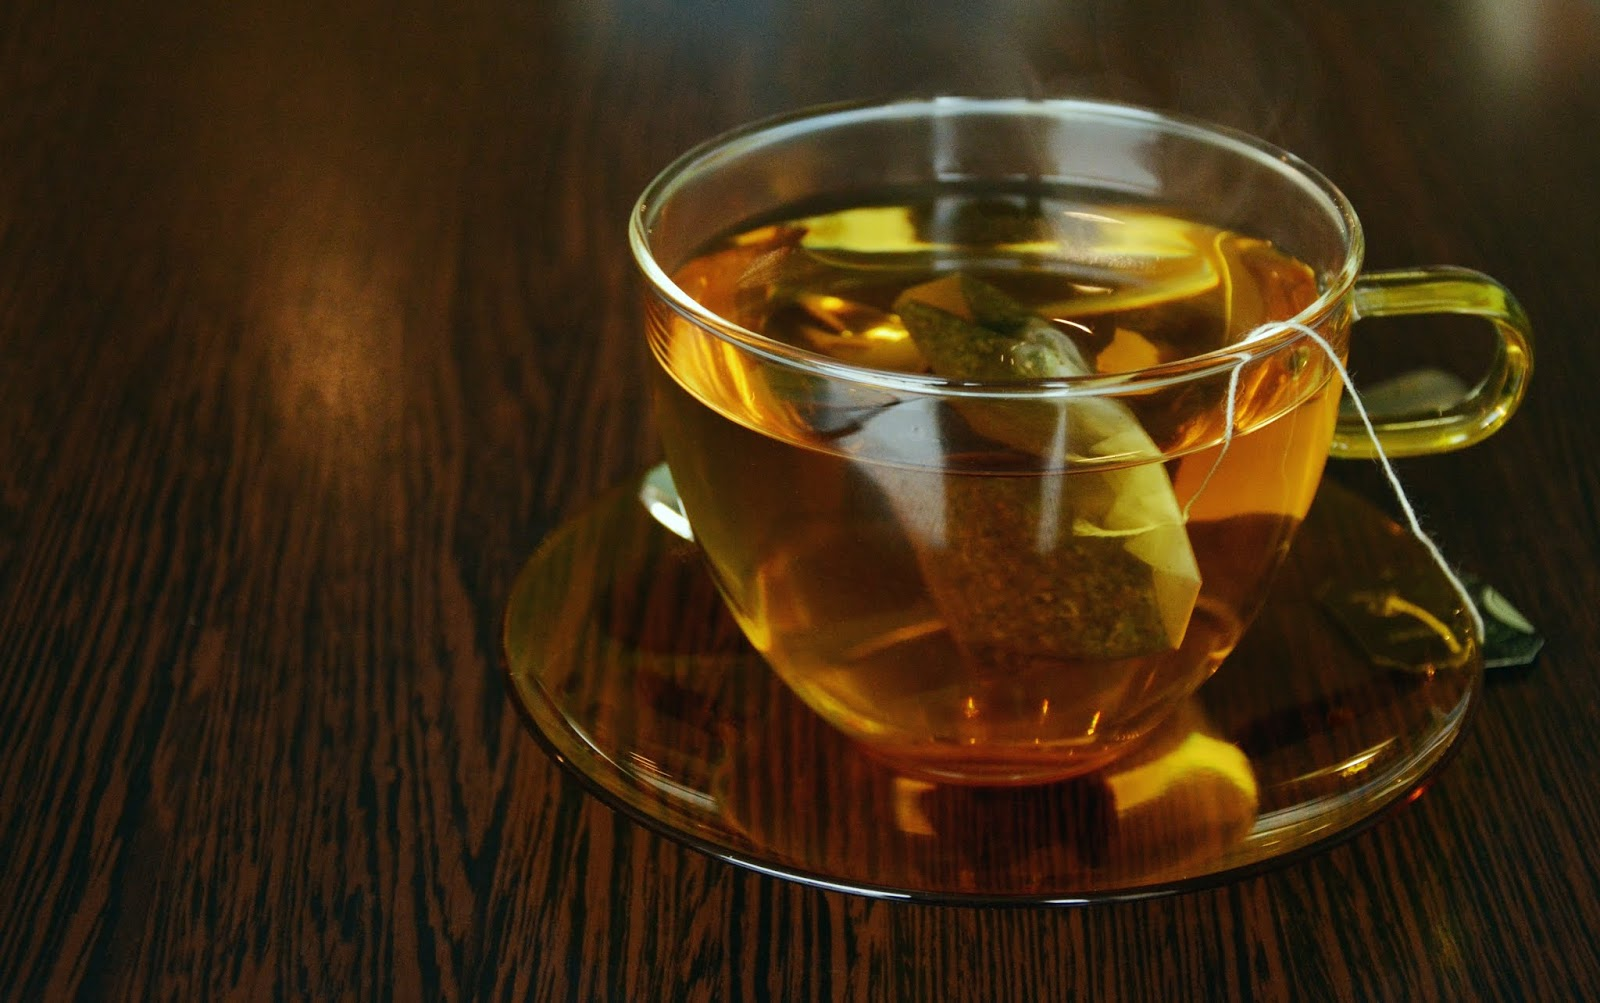 How to Get Rid of a Headache Completely - Green Tea